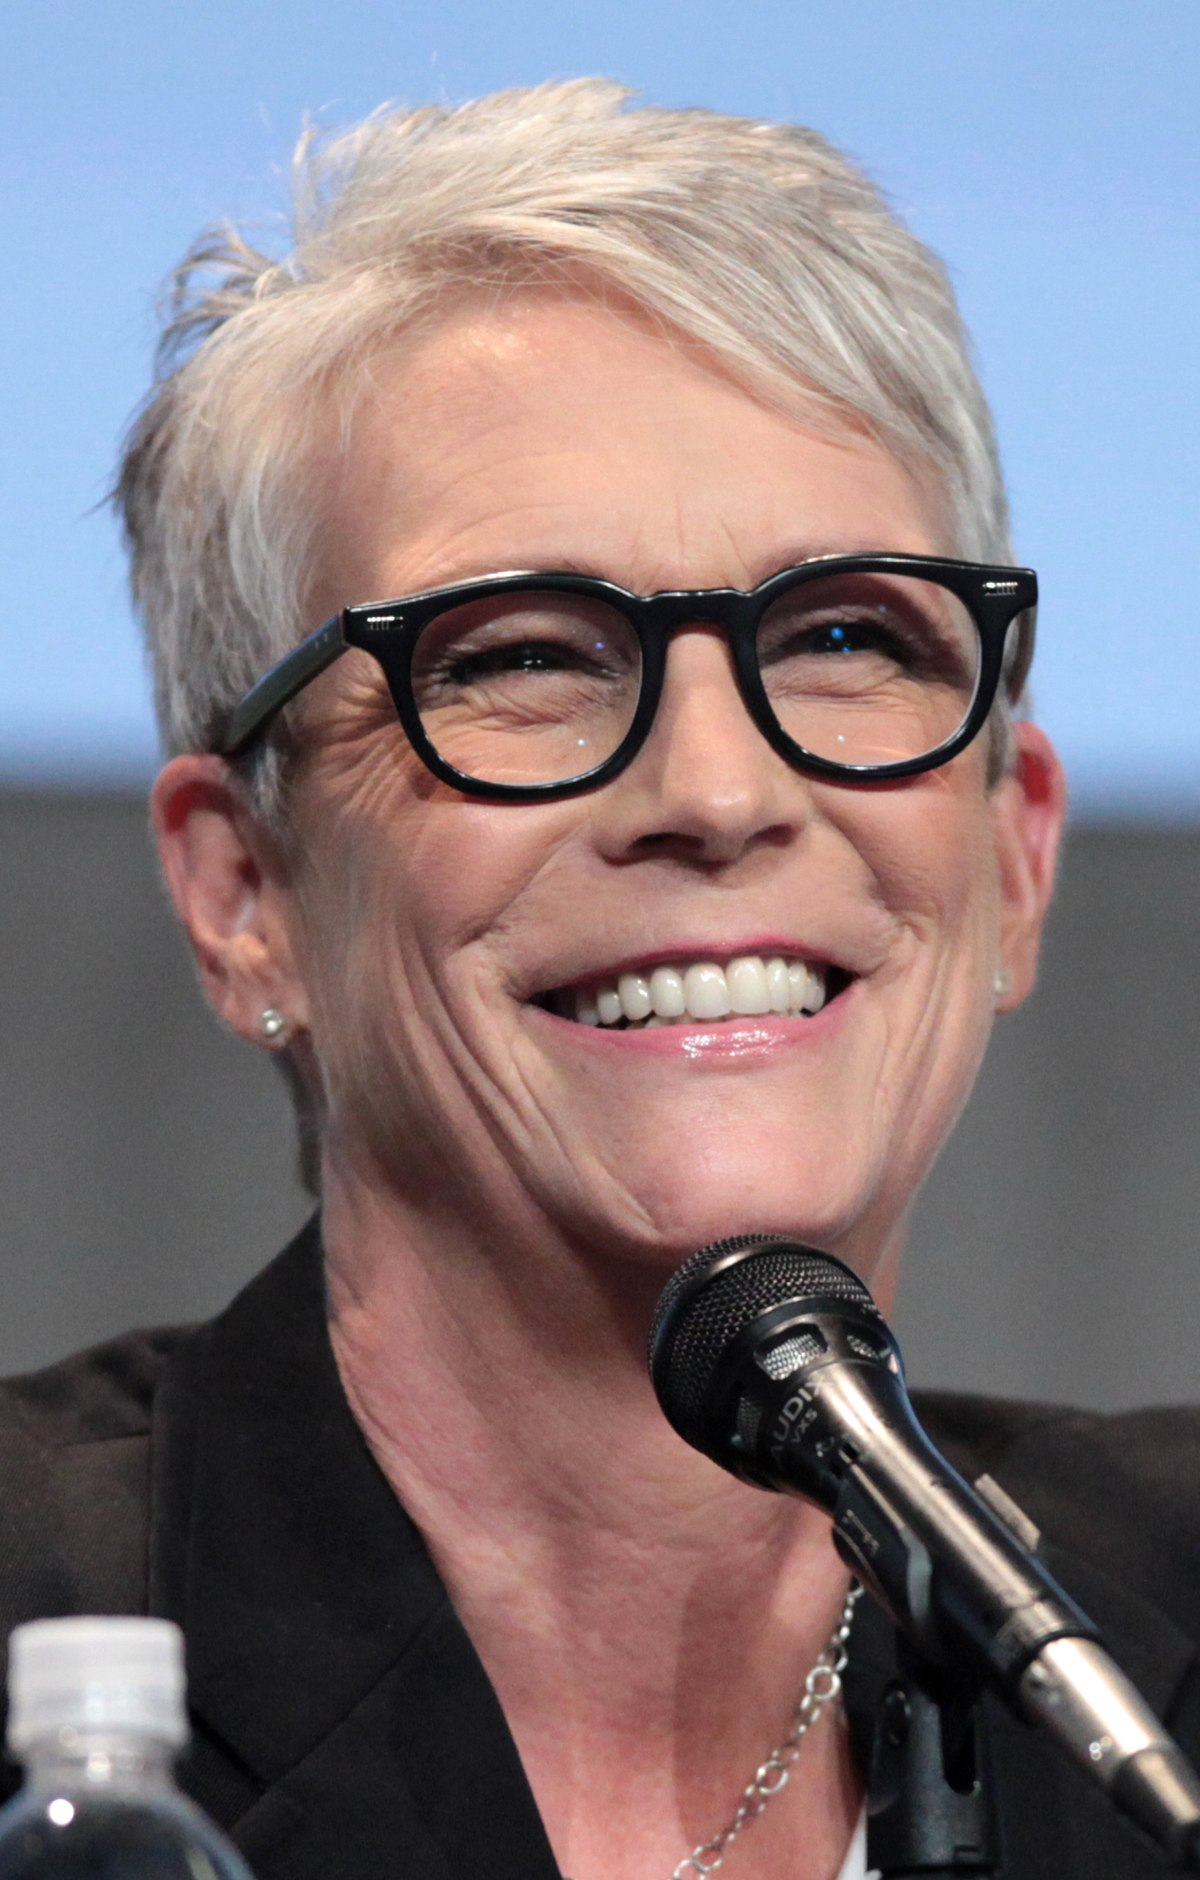 jamie lee curtis - photo #1